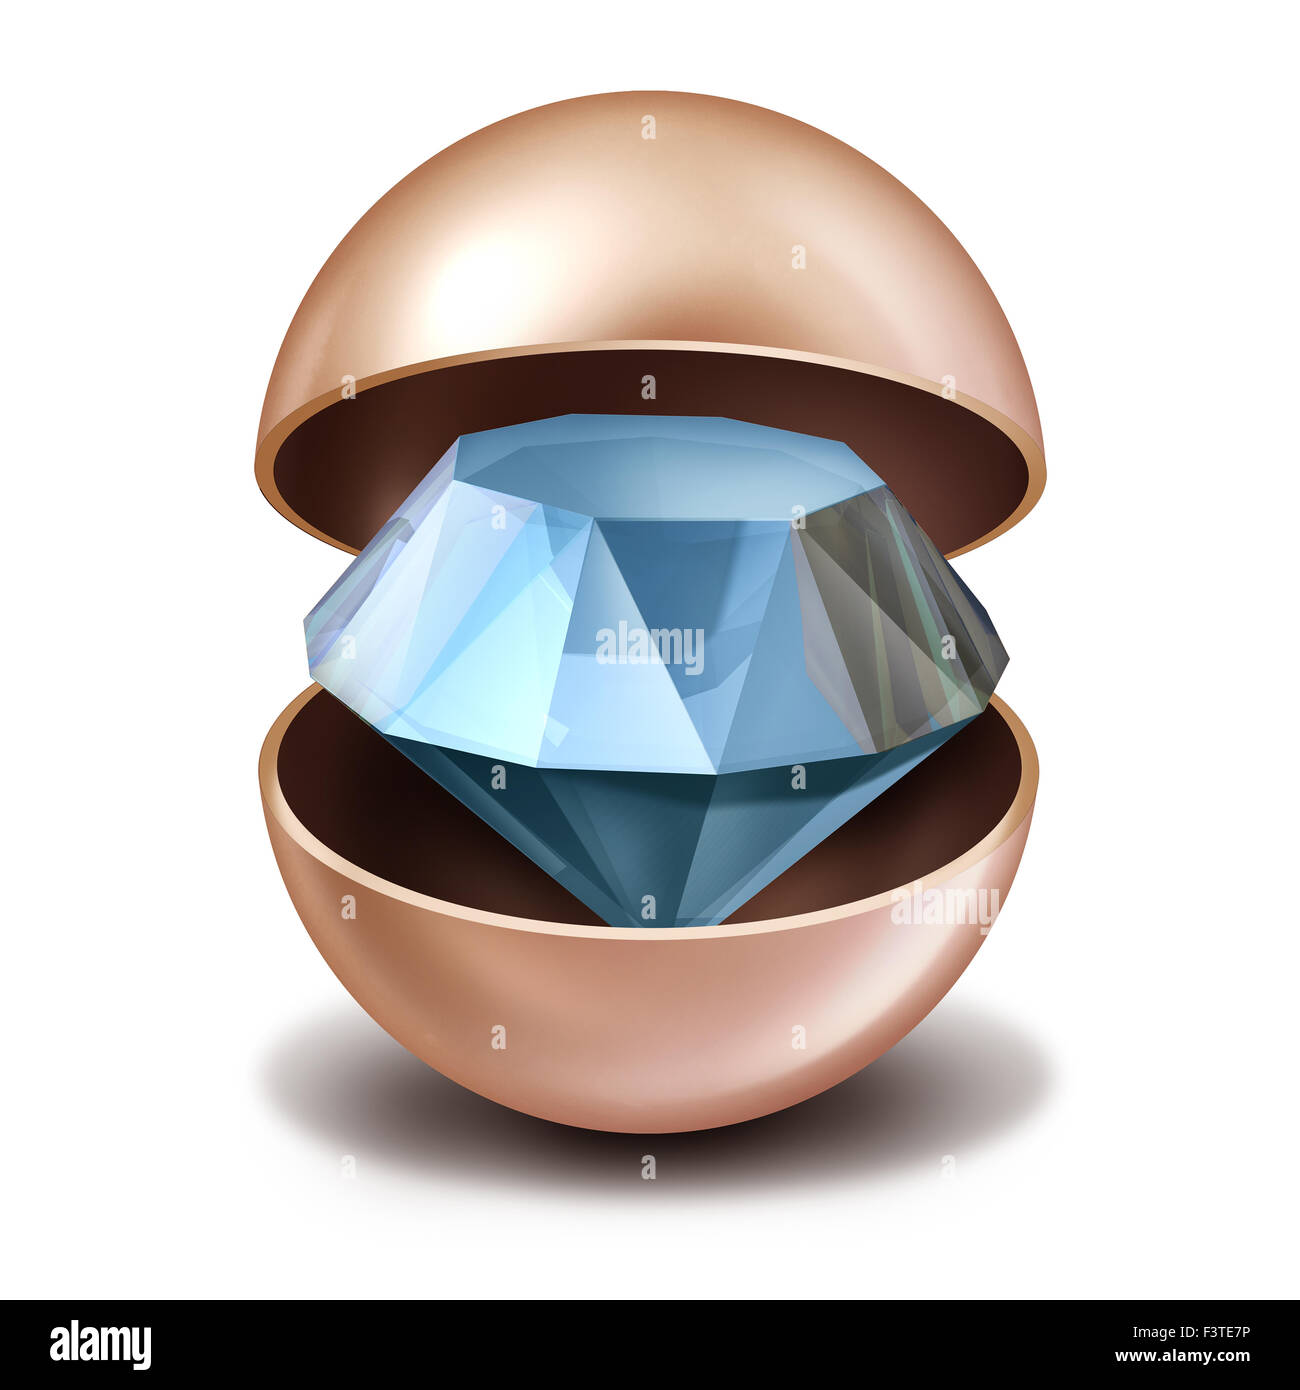 Investing secrets concept as an open precious pearl with a sparkling diamond inside as a business investing metaphor Stock Photo